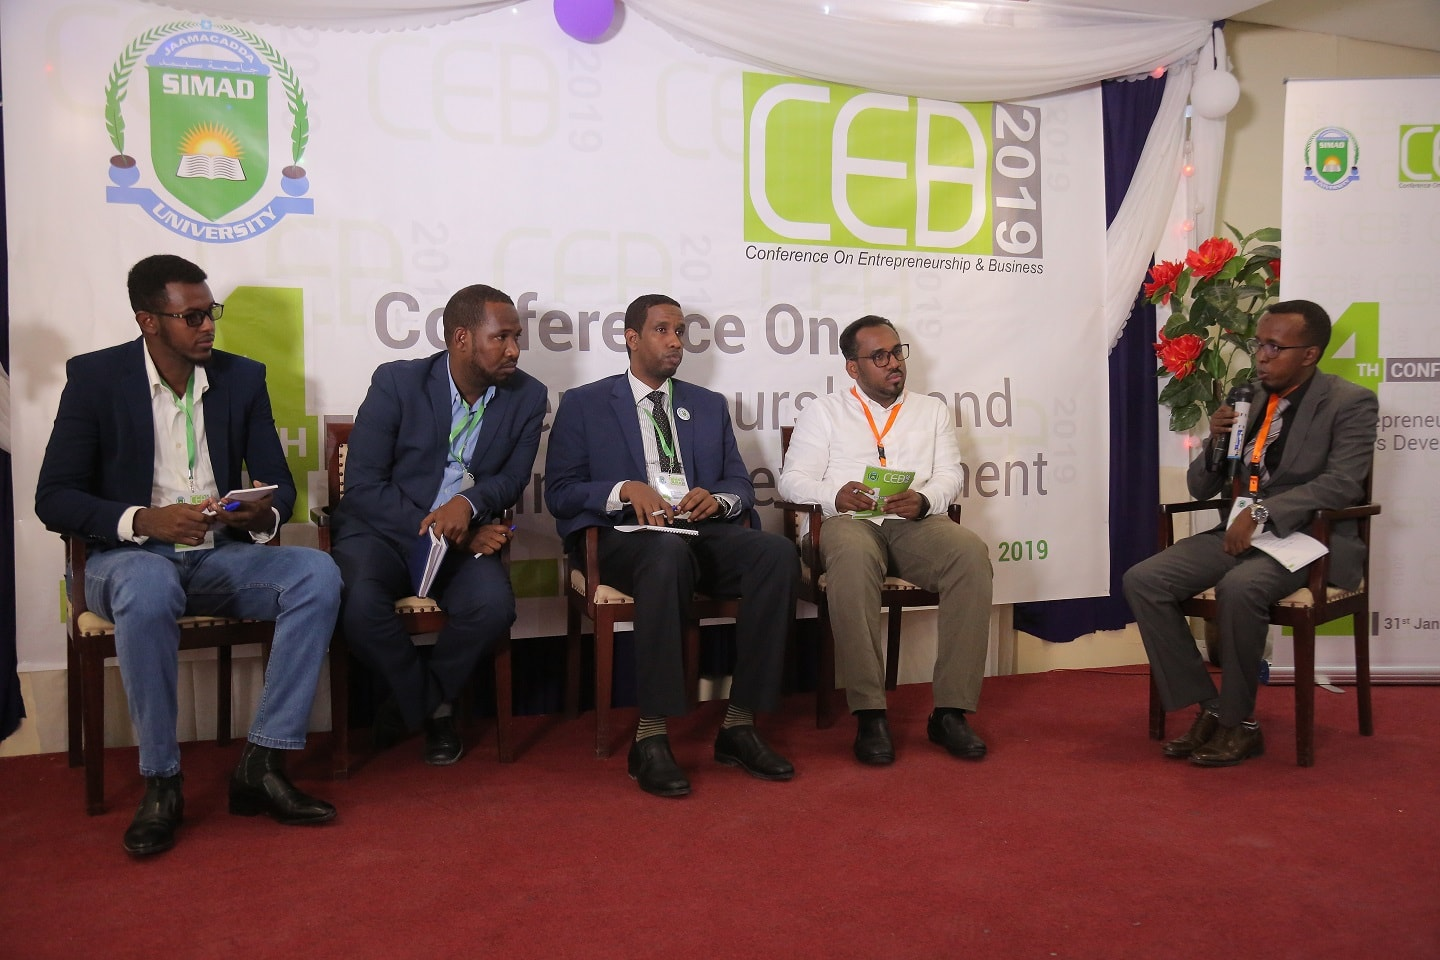 SIMAD University hosts the fourth session of CEB